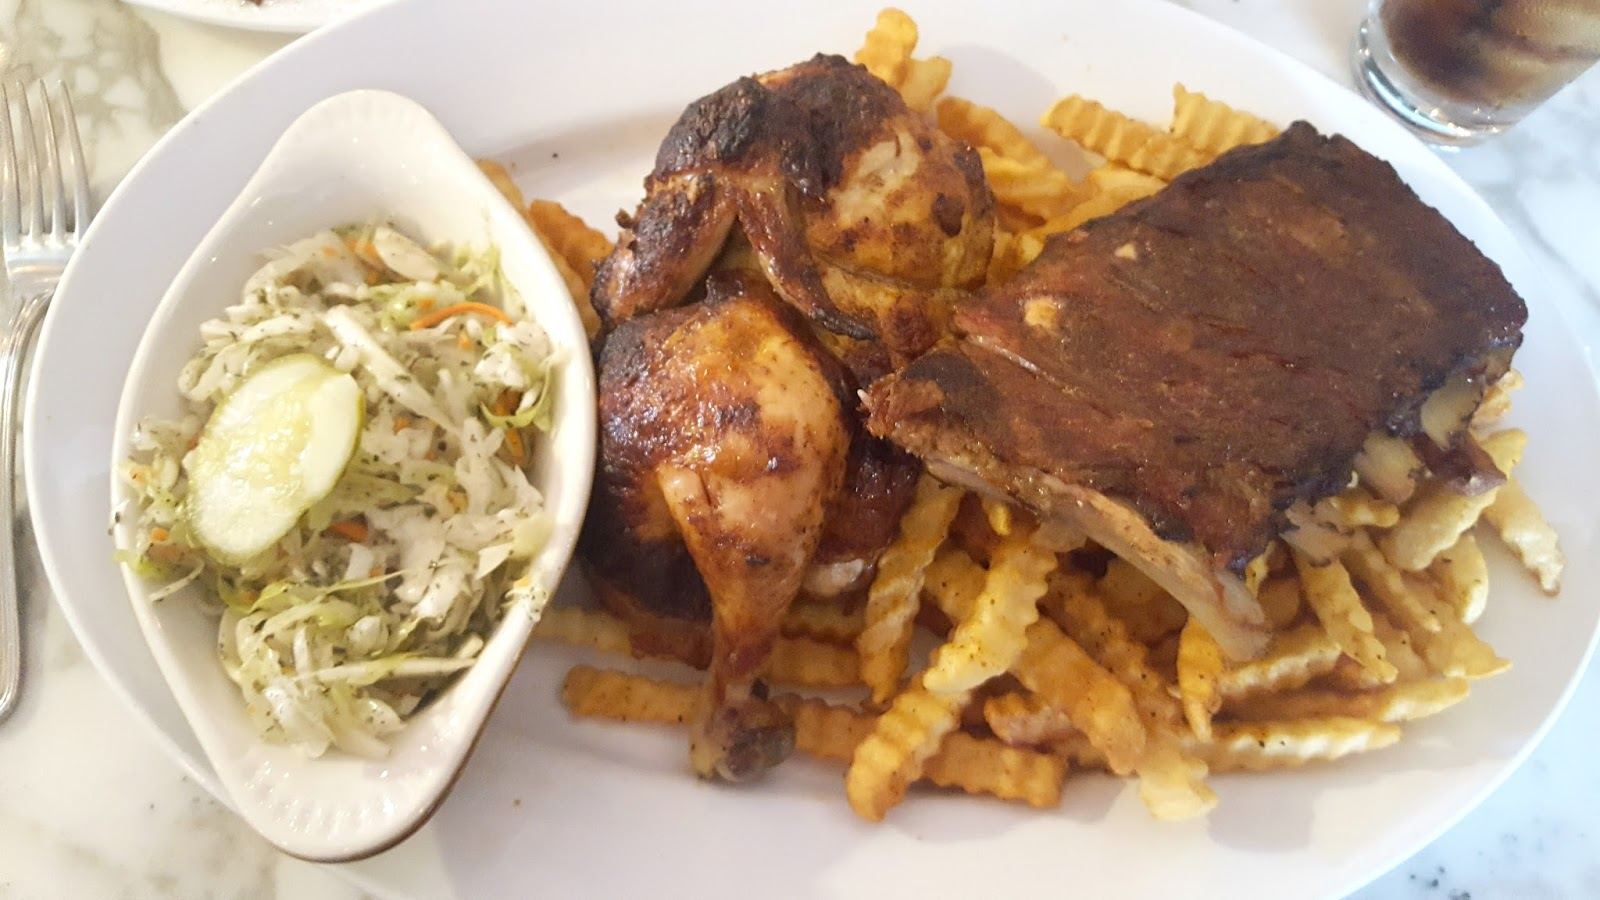 Restaurant review & GIVEAWAY: Beau's Grillery, Bloomfield Hills, MI